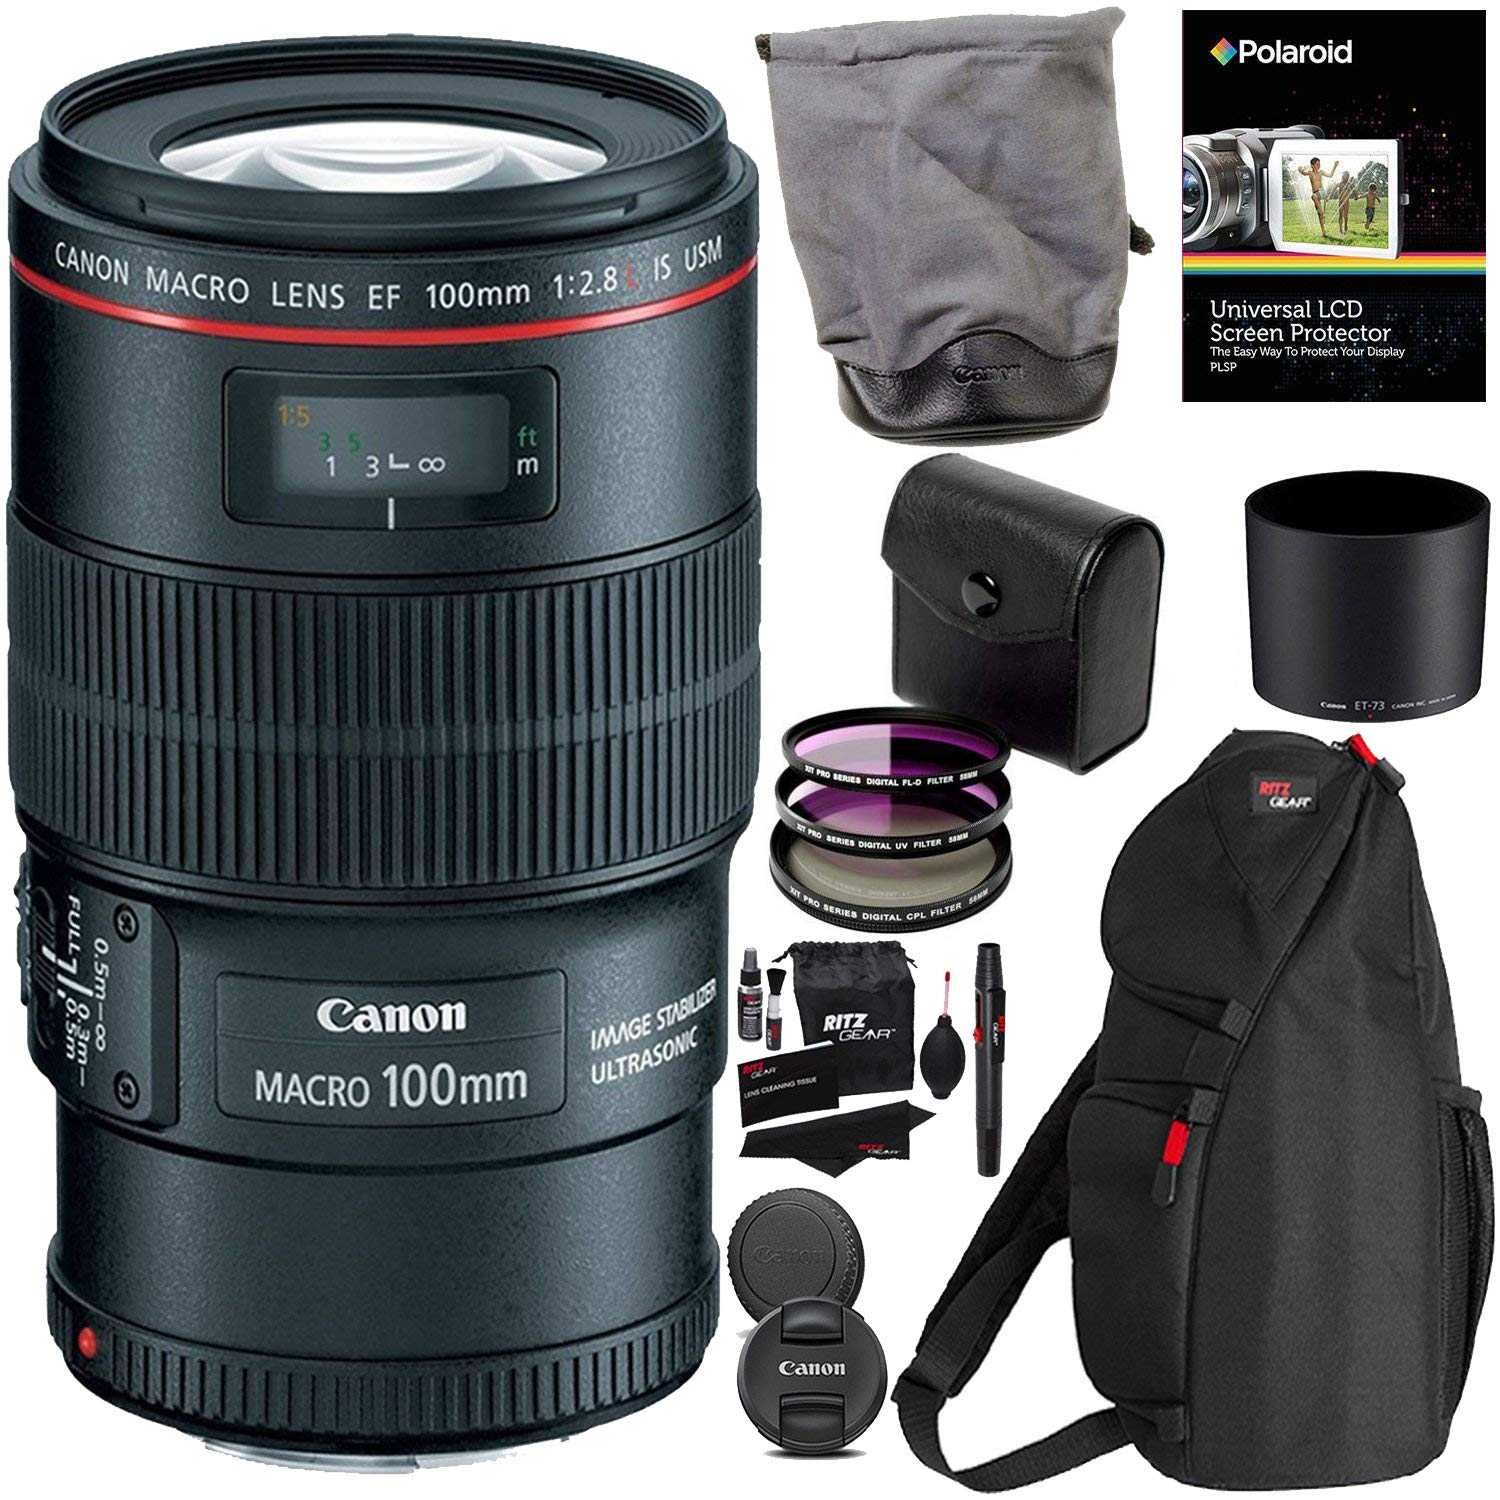 Canon EF 100mm f/2.8L is USM Macro Lens for Canon Digital SLR Cameras, 3 Piece 67mm Filter Kit (UV/CPL/FLD) and RitzGear Accessory Kit